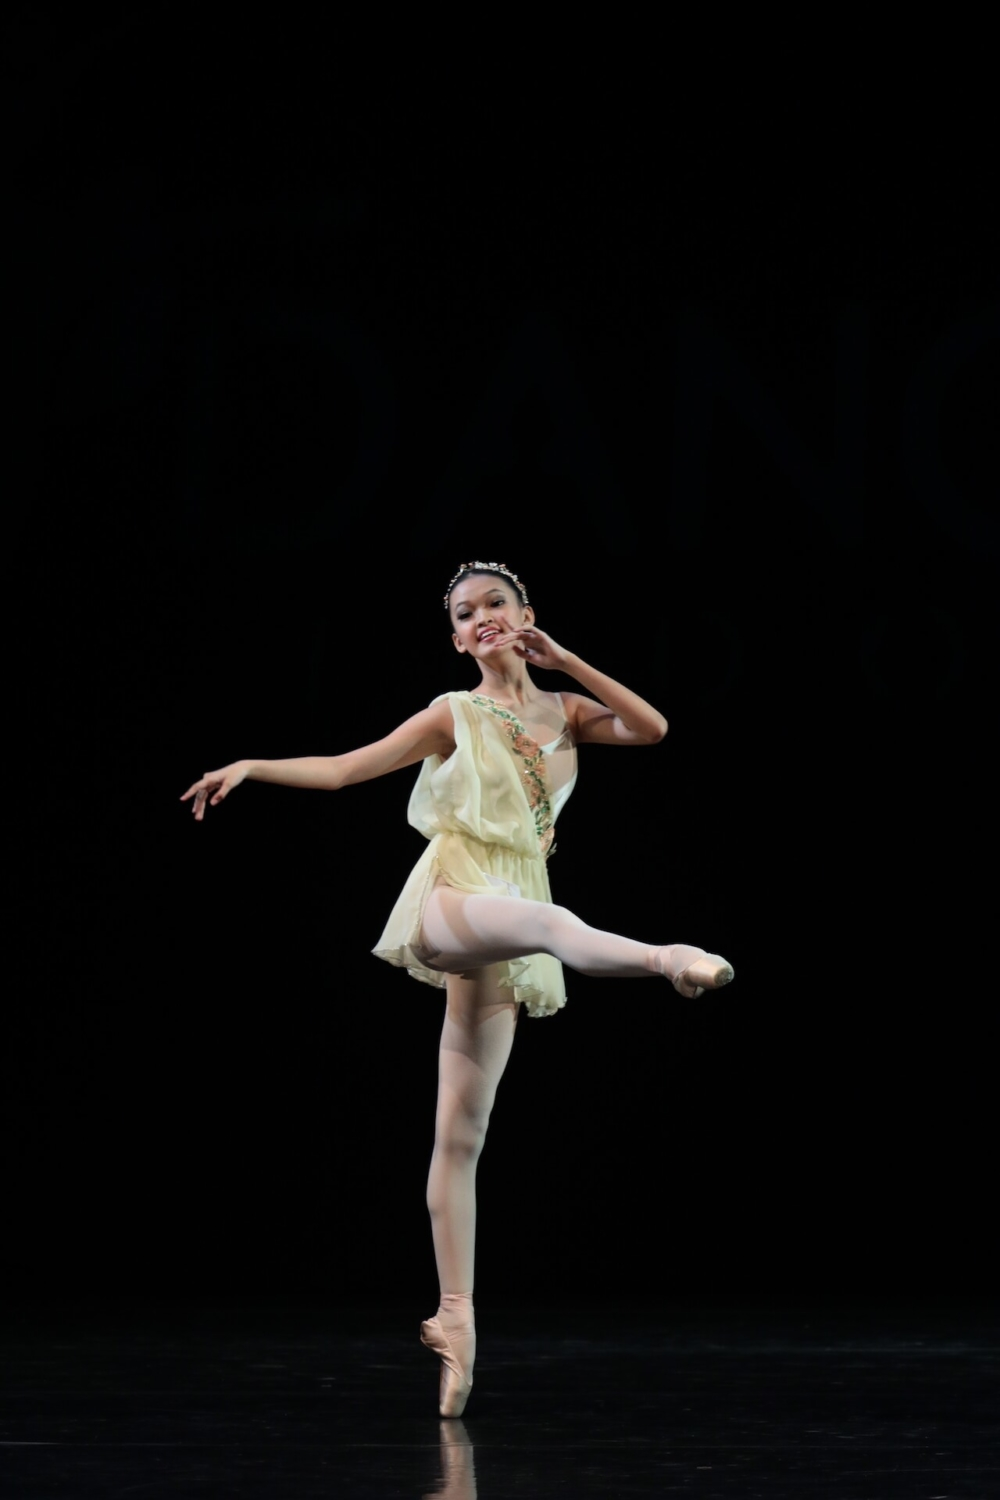 Dance Prix Indonesia 2019 – Ballet Solo Pre-Senior Finalist, Jade Princessa (The Ballet Academy at Casagaya)